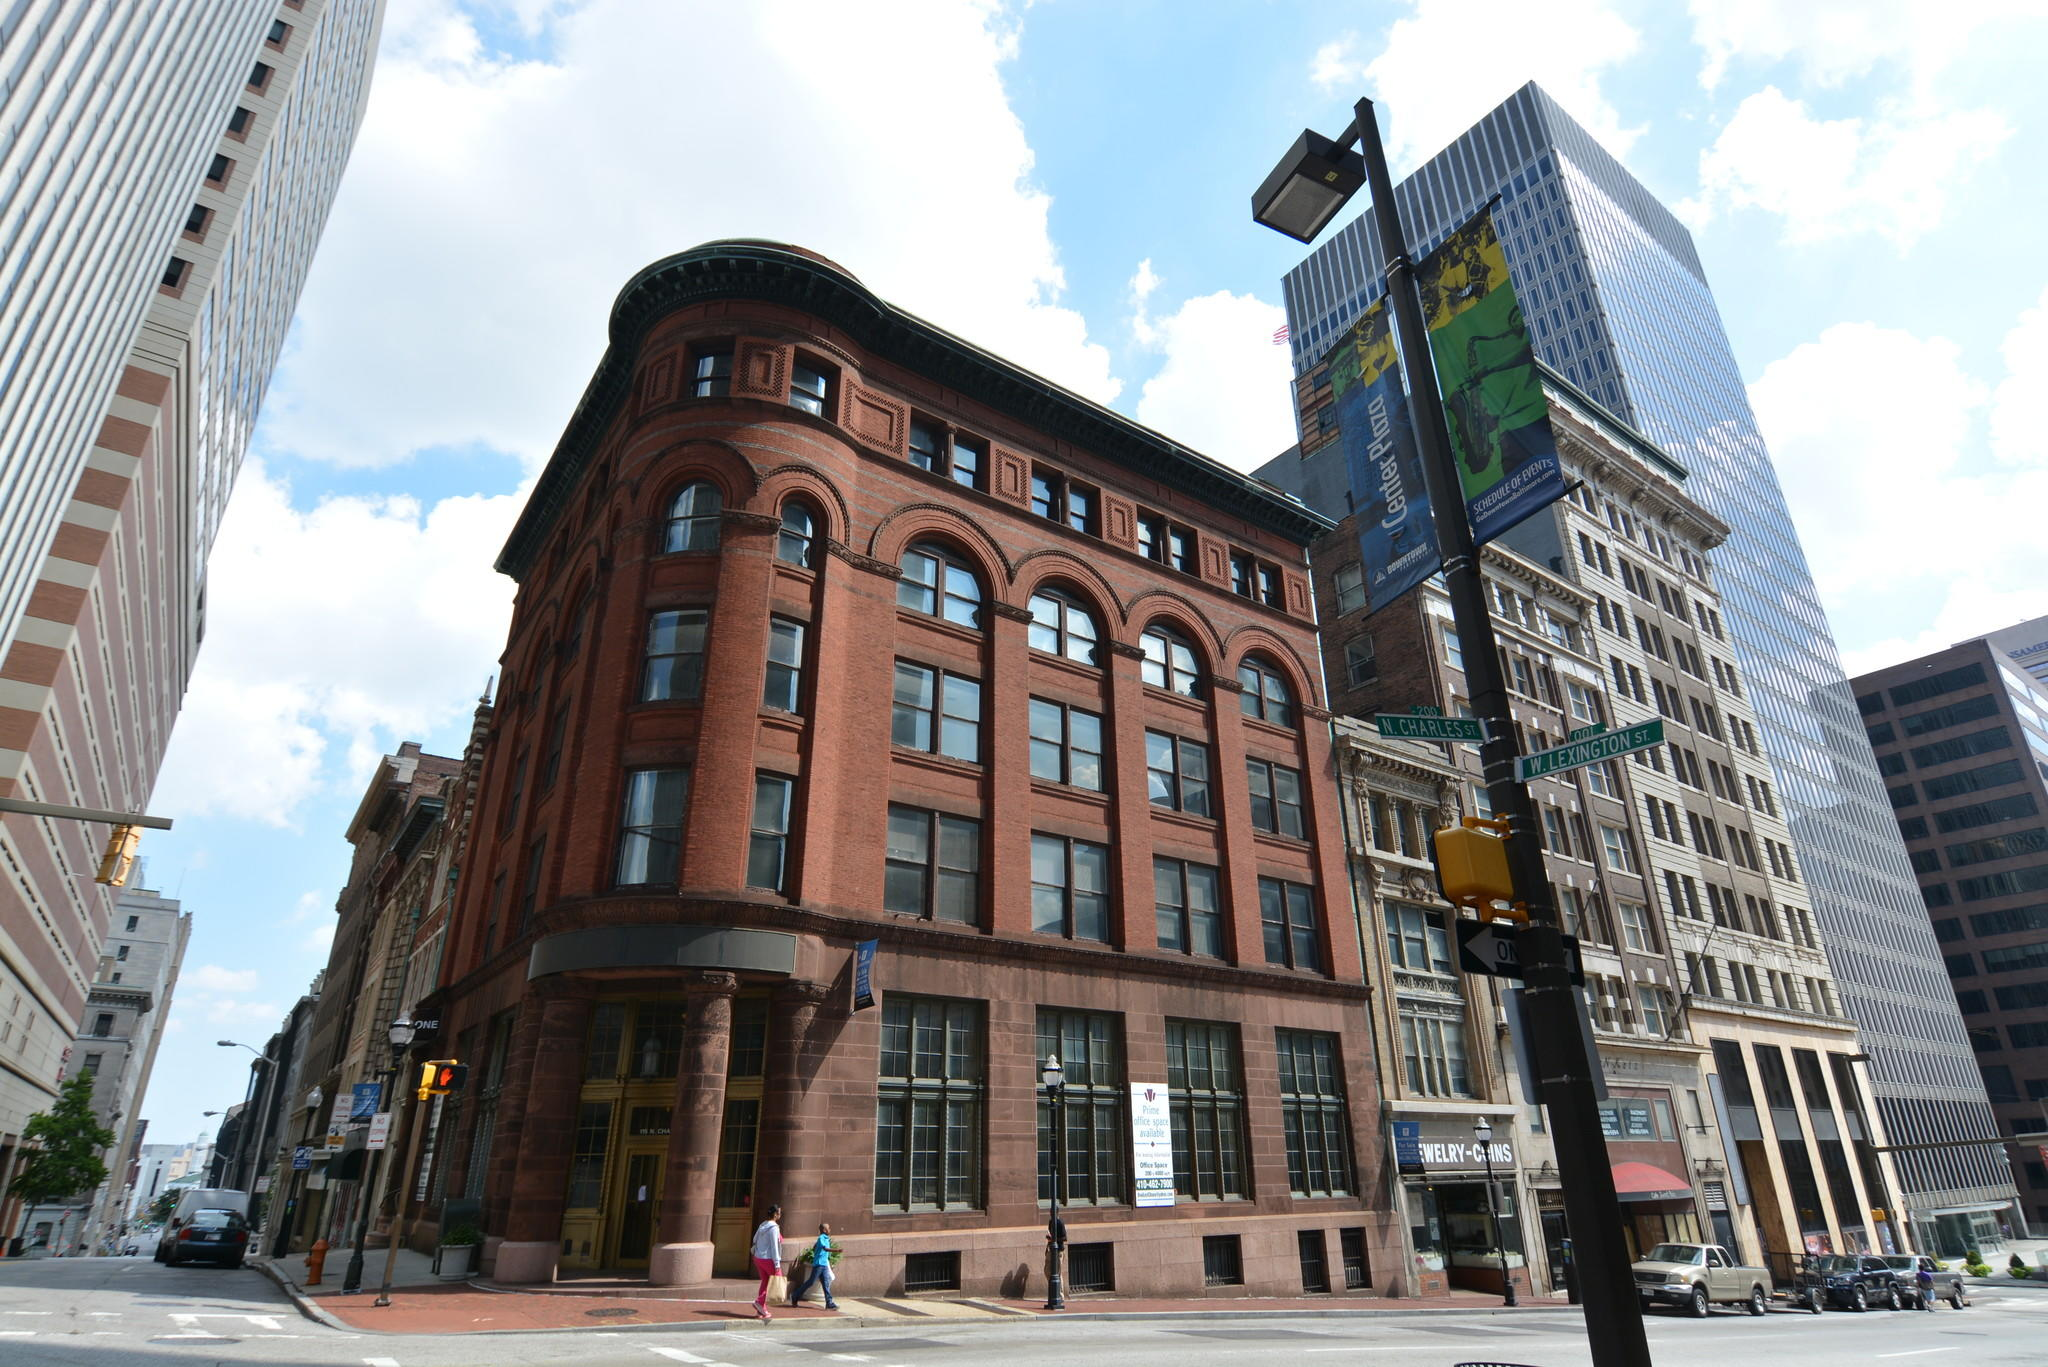 Poverni Sheikh Group and Meisel Capital Partners are planning shops and apartments in the former Central Savings Bank building at the corner of Lexington and Charles streets.